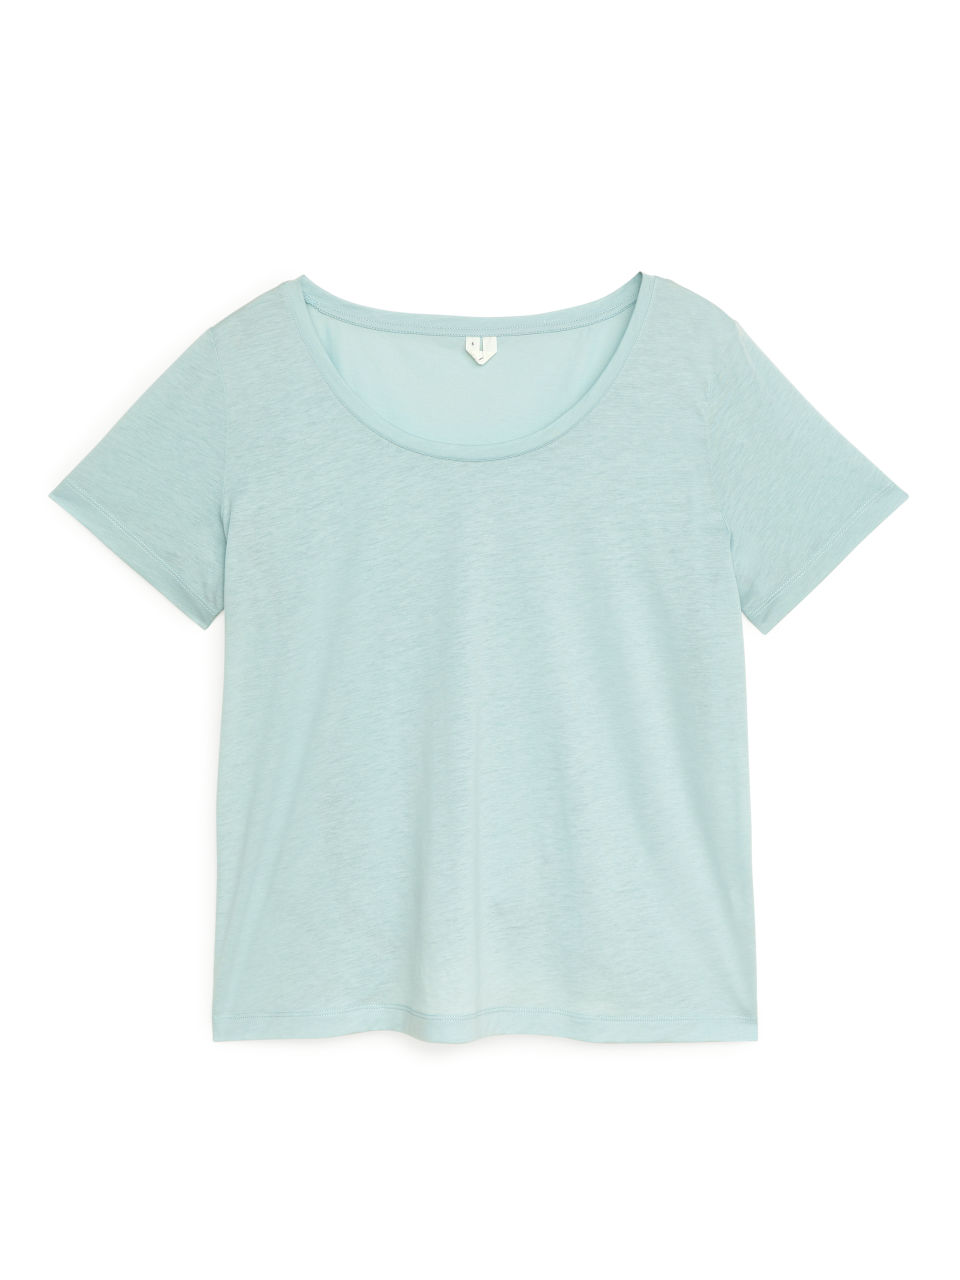 Lyocell Blend T-Shirt - Turquoise